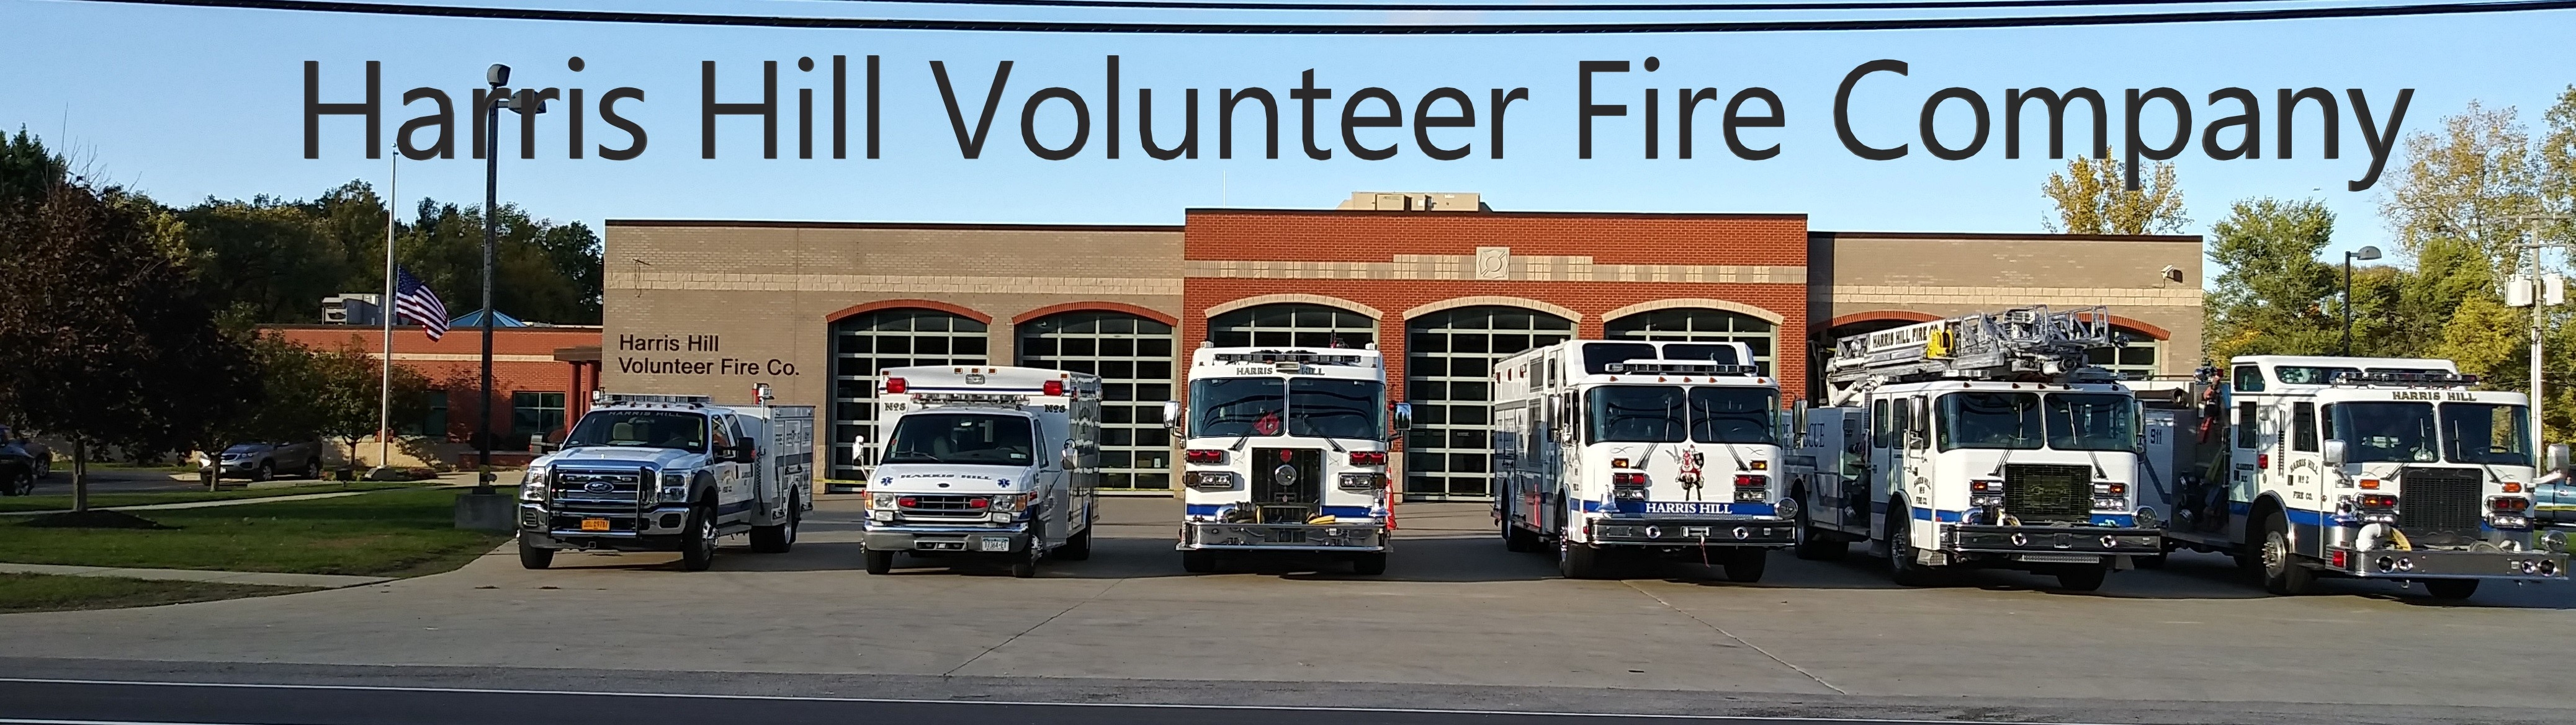 Harris Hill Volunteer Fire Company